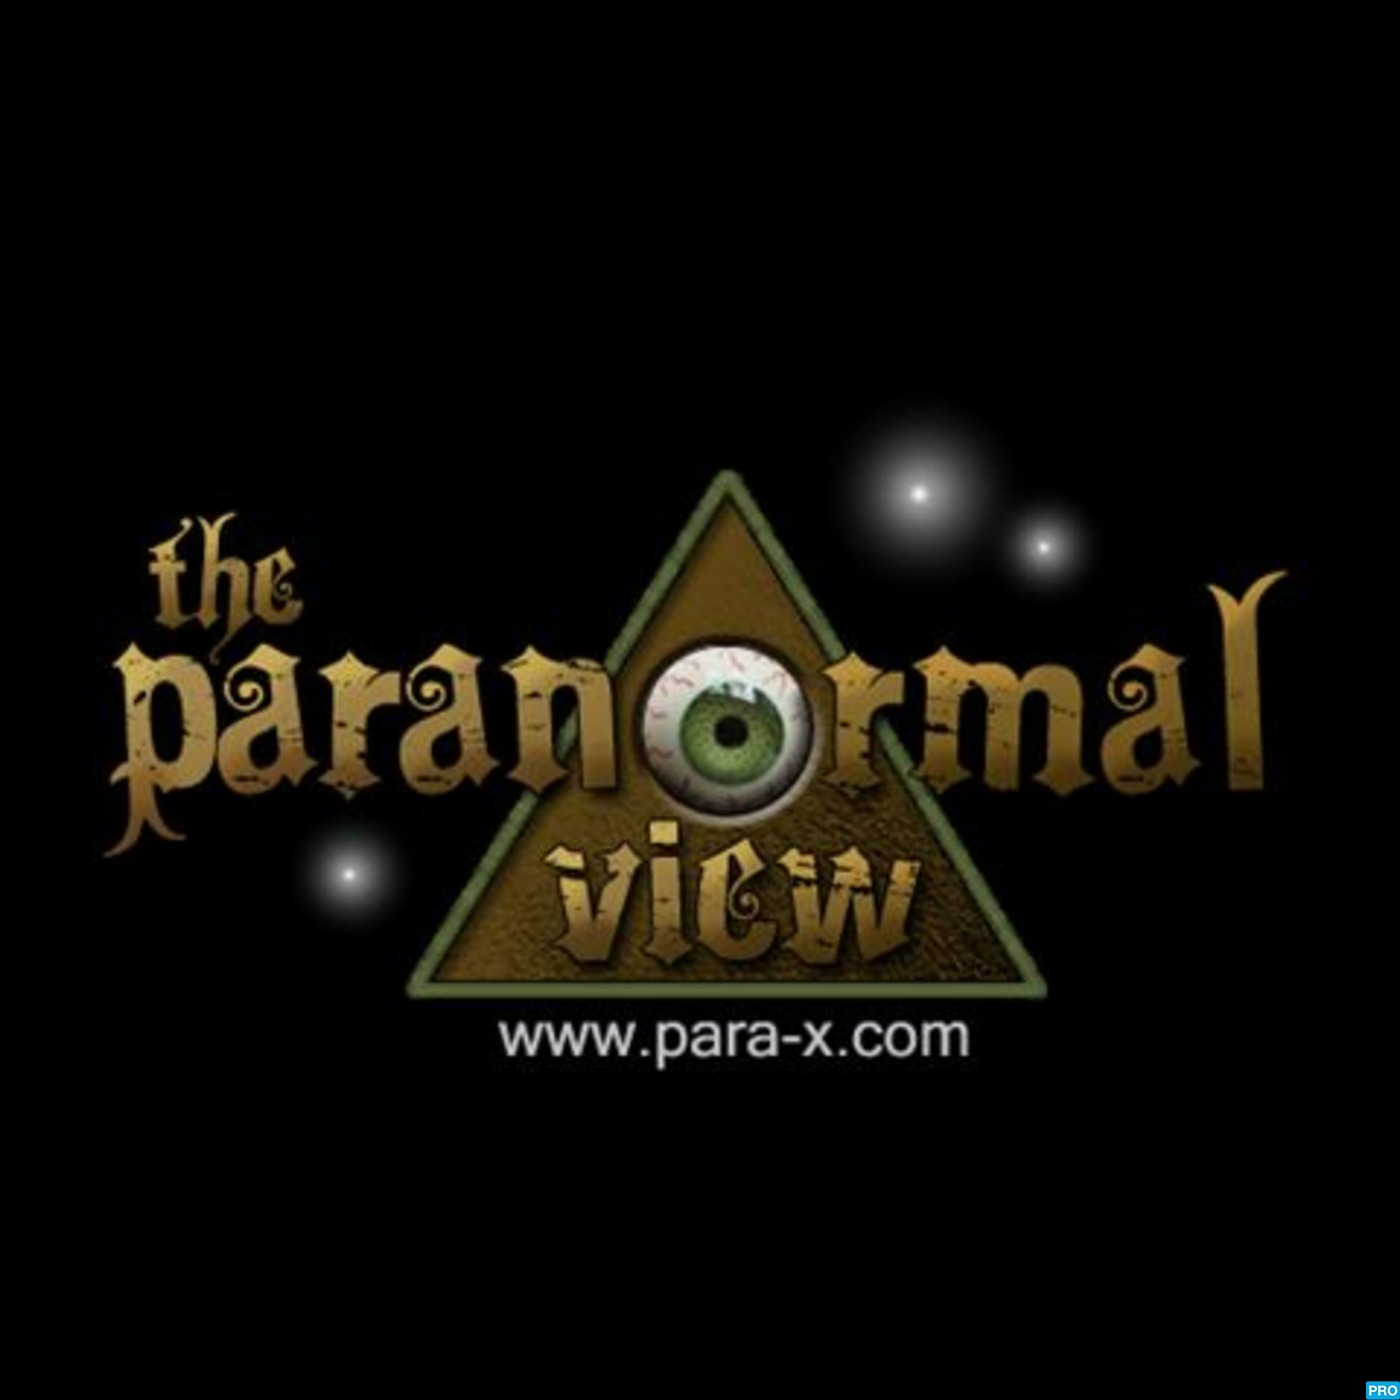 The Paranormal View